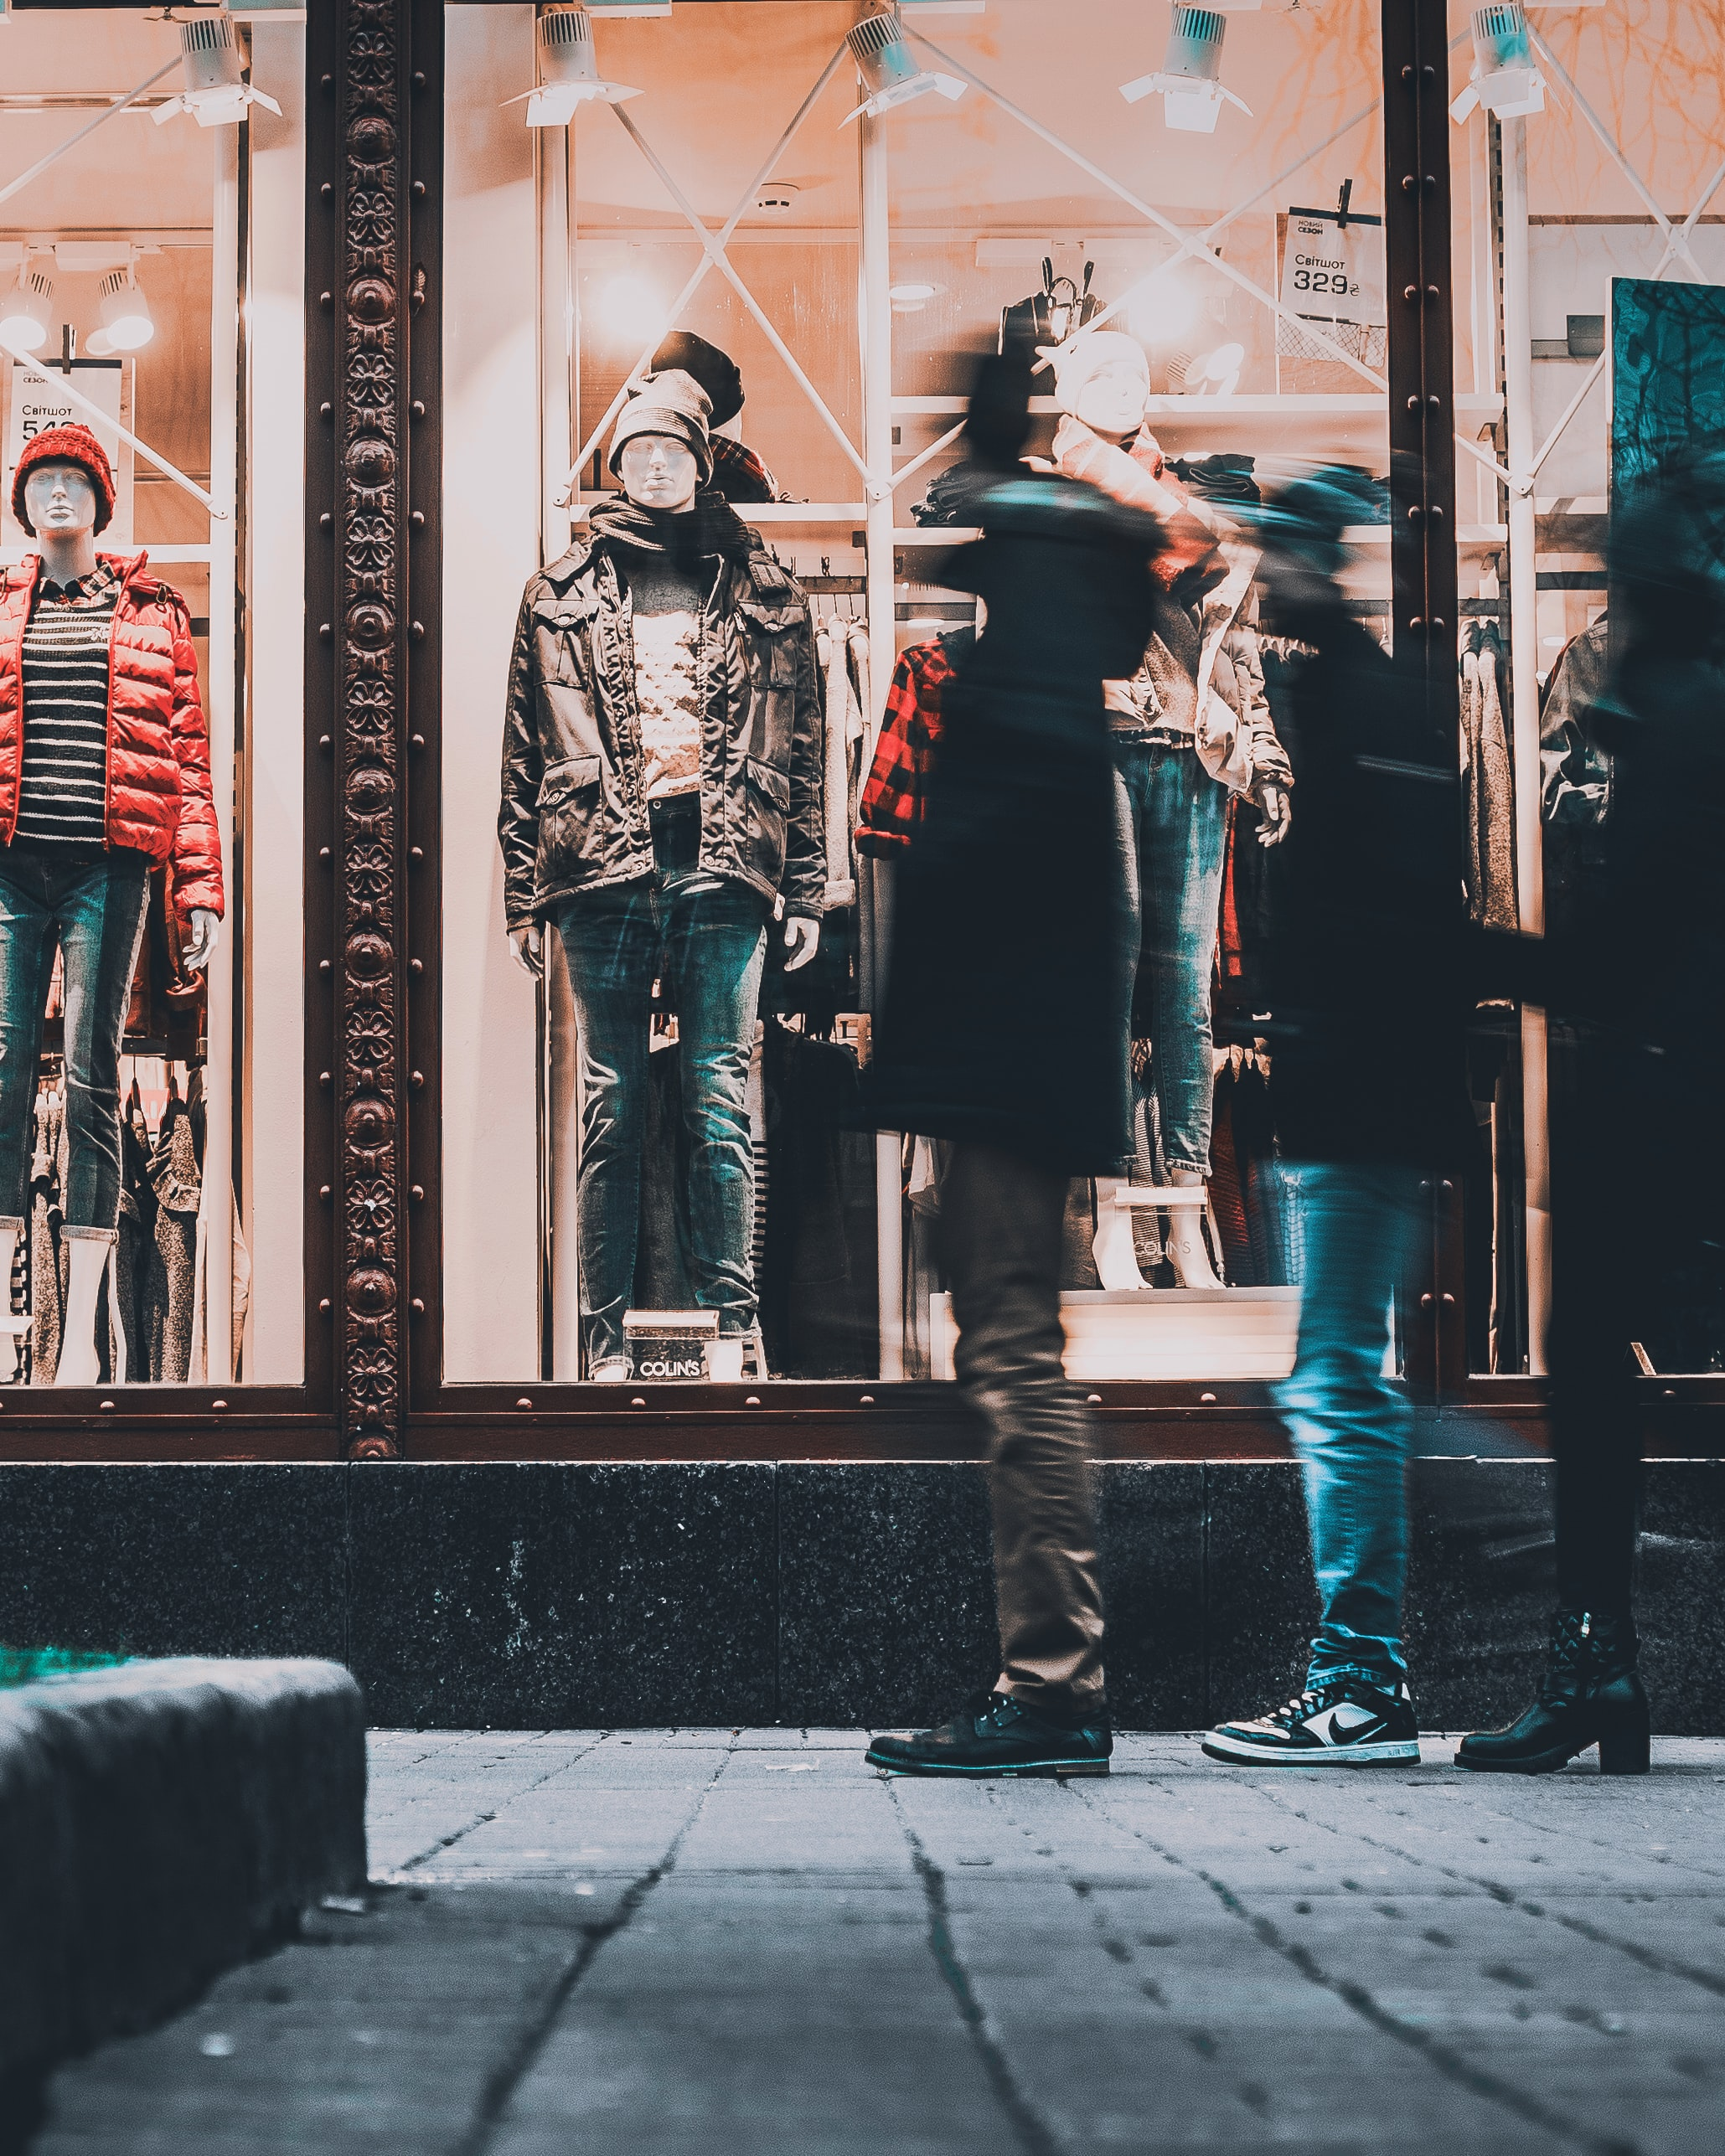 people watching manequins wearing jackets